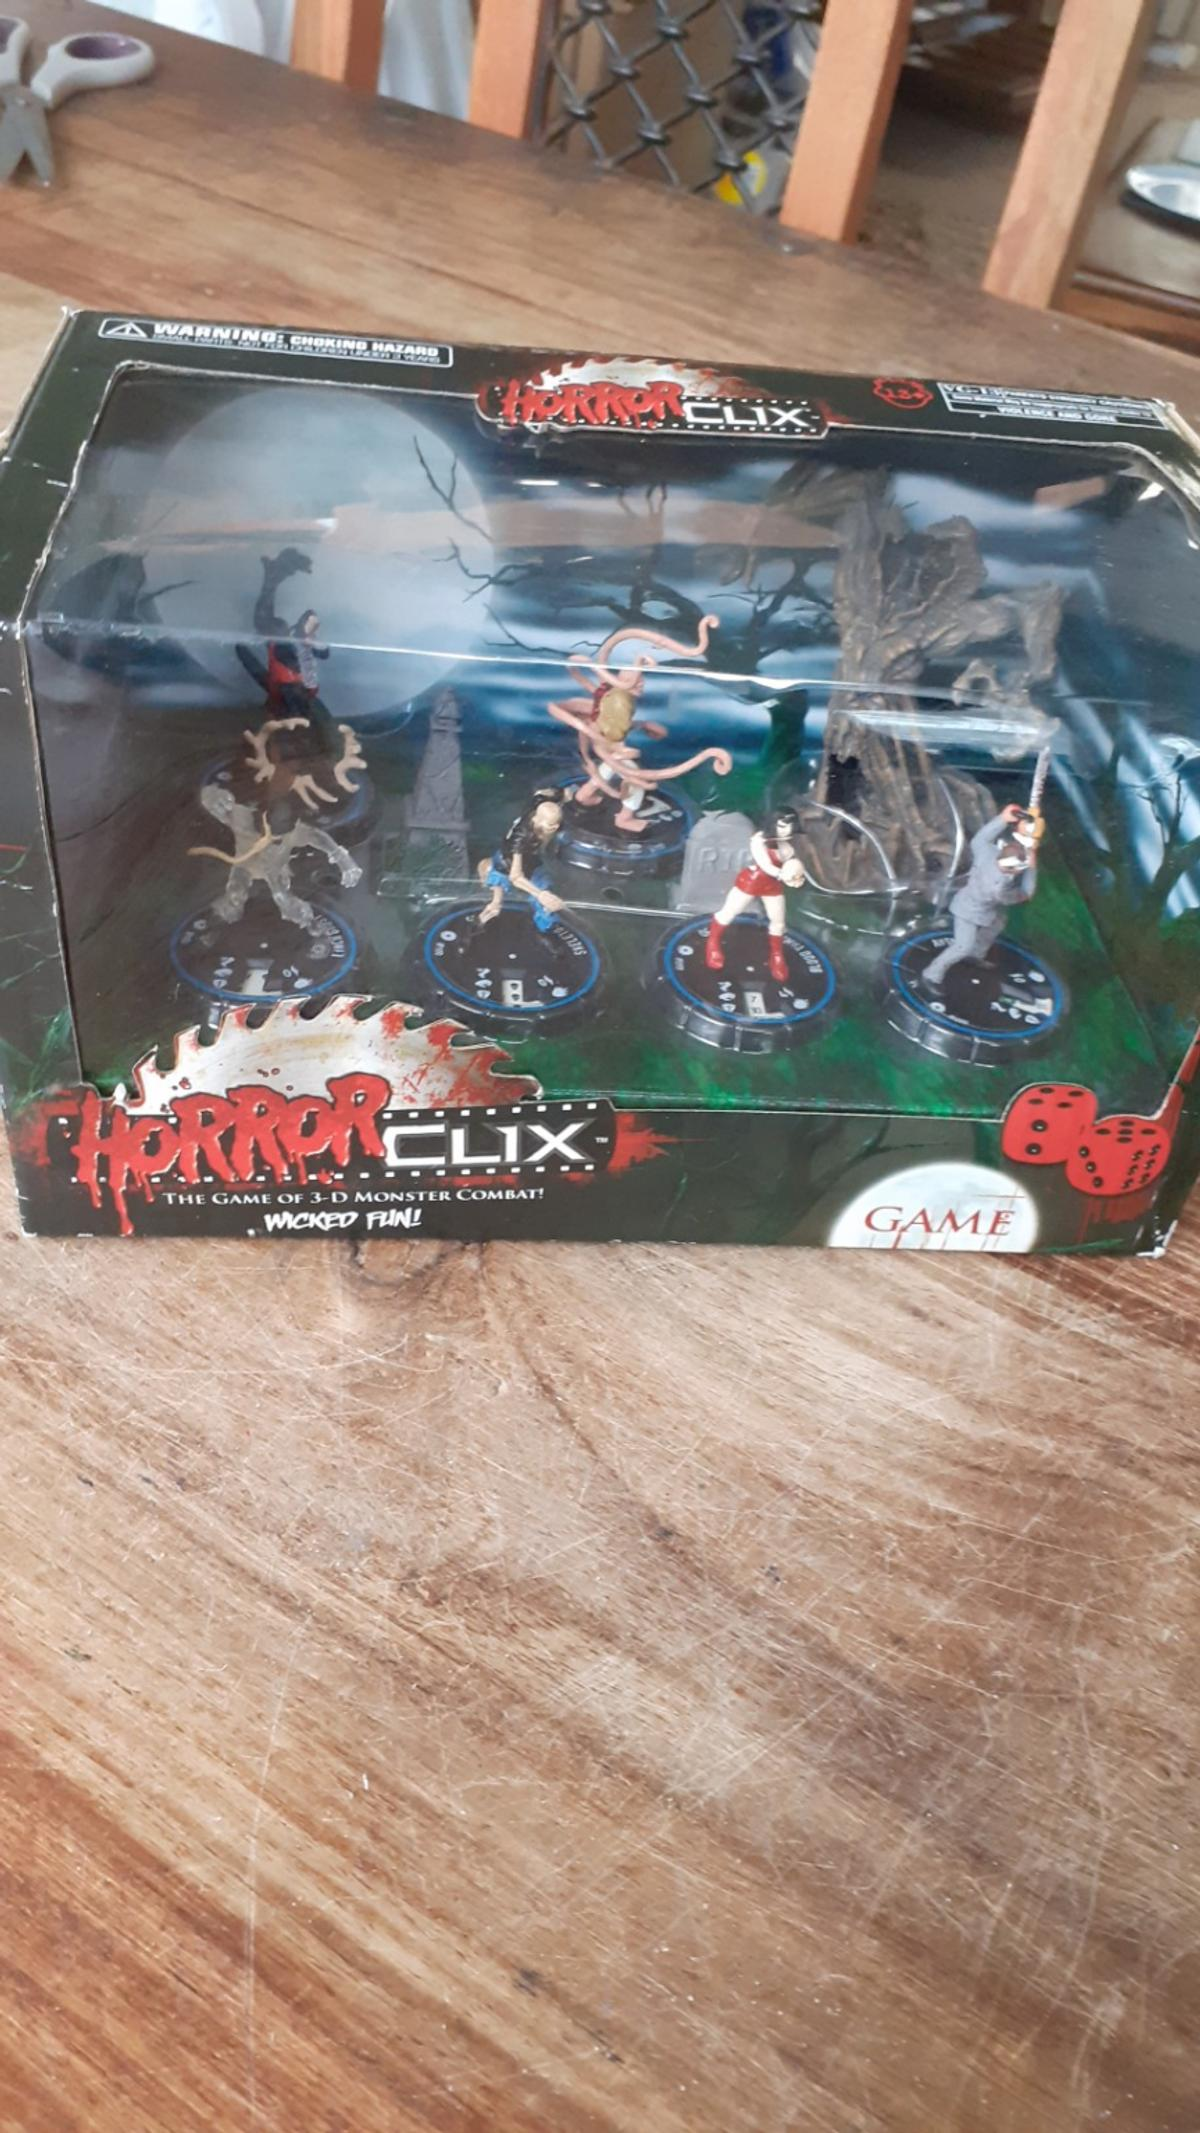 horror clix game of 3d monster combat ,this 1 wicked fun all new and in box with 6 figures and a tree